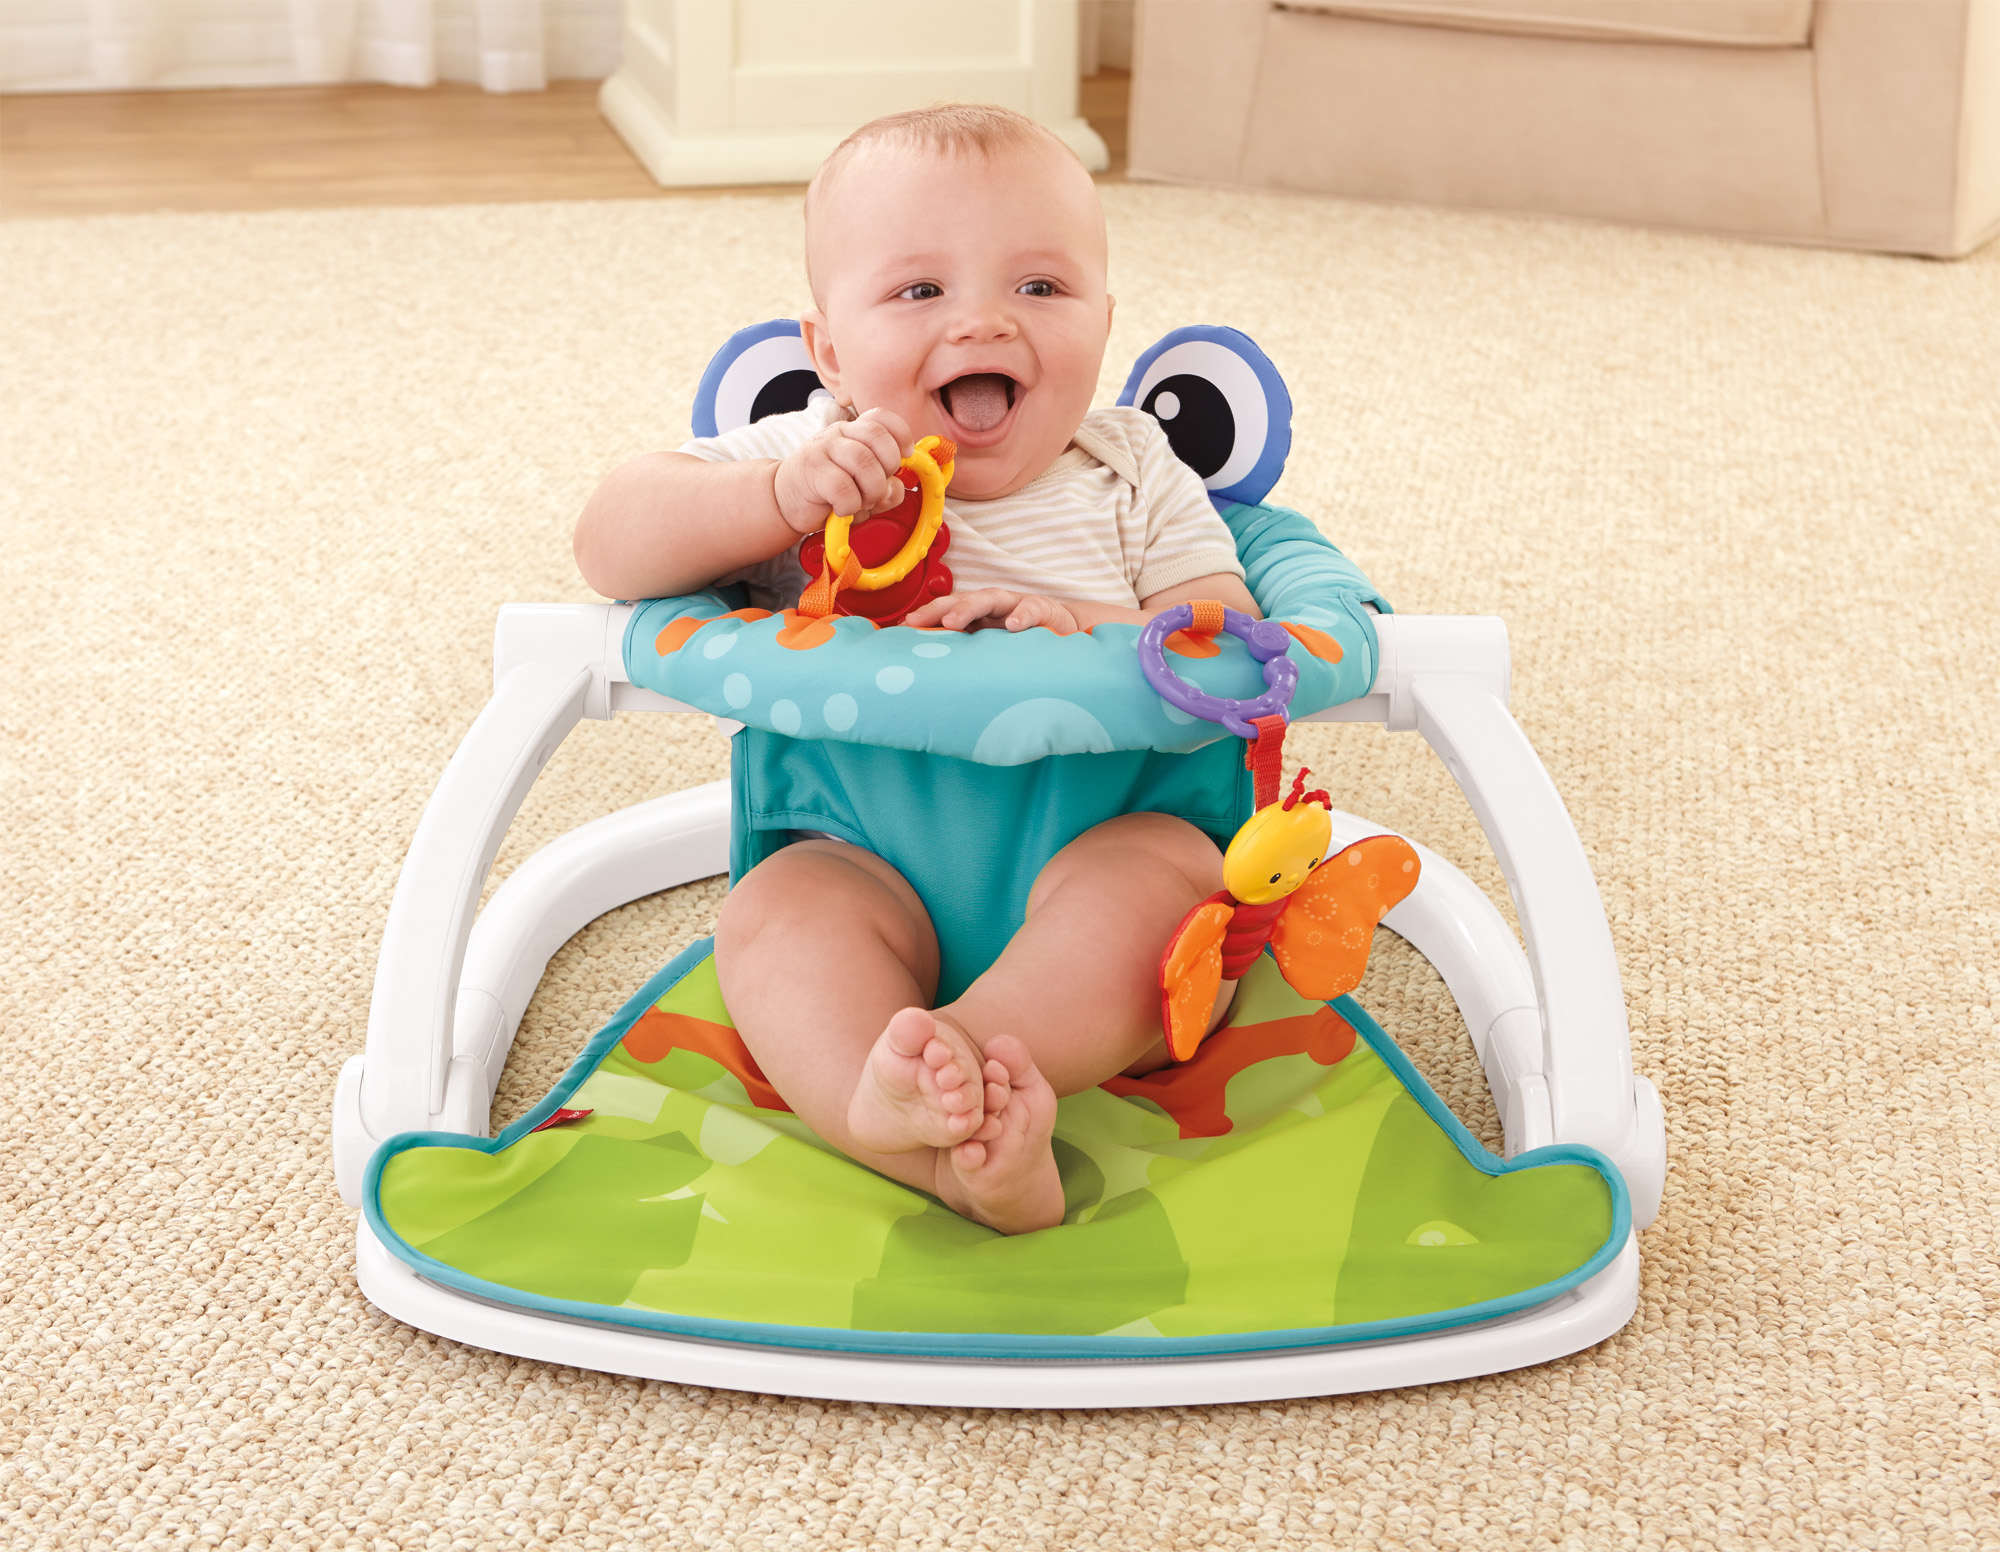 Baby bath chair walmart - Baby Bath Chair Walmart 38